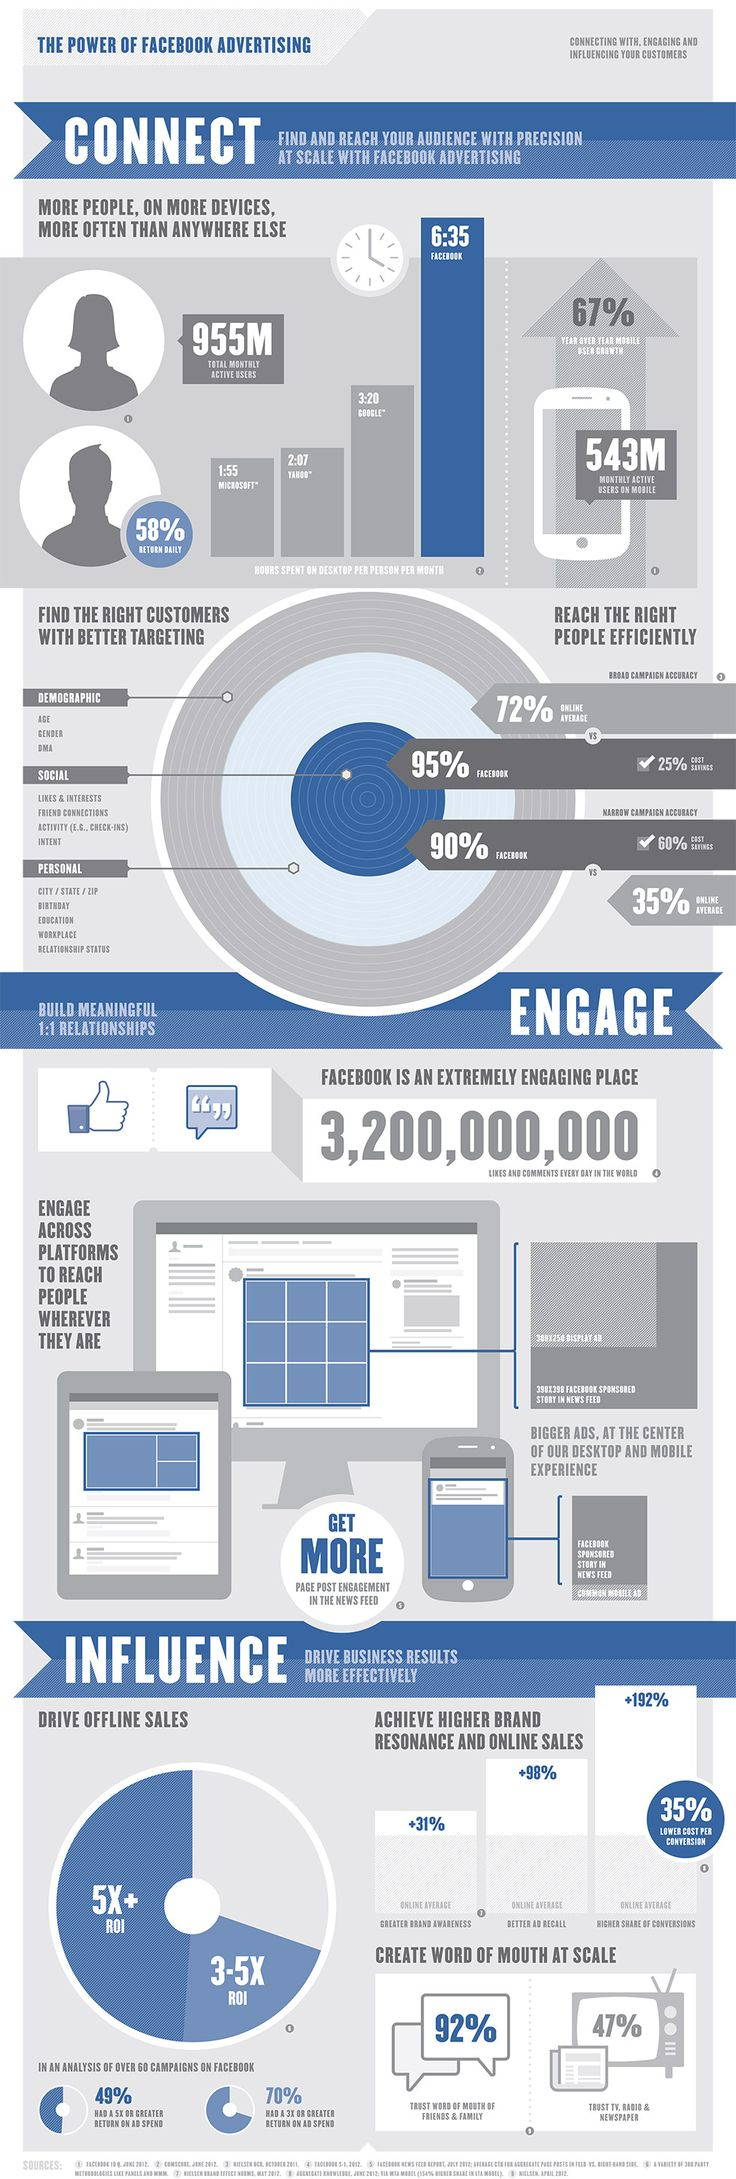 Facebook Power Of Advertising #infographic